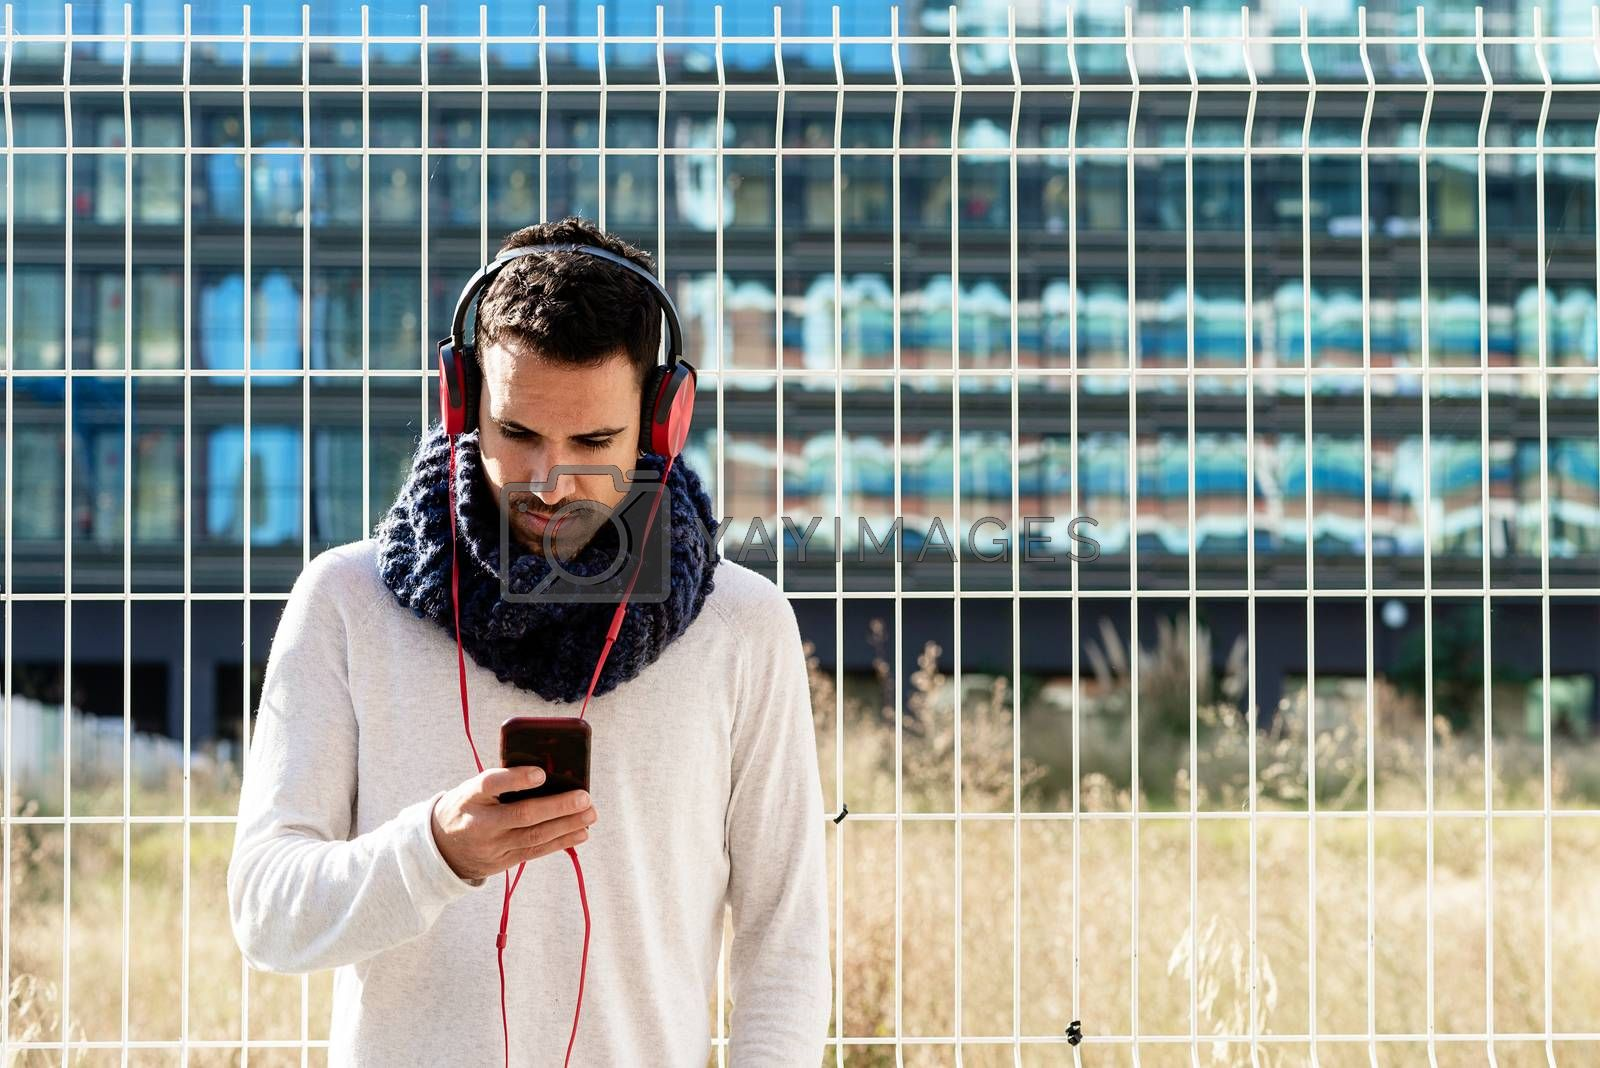 Young bearded male with headphones and holding smartphone while leaning on a metallic fence against skyscrapers in sunny day by raferto1973